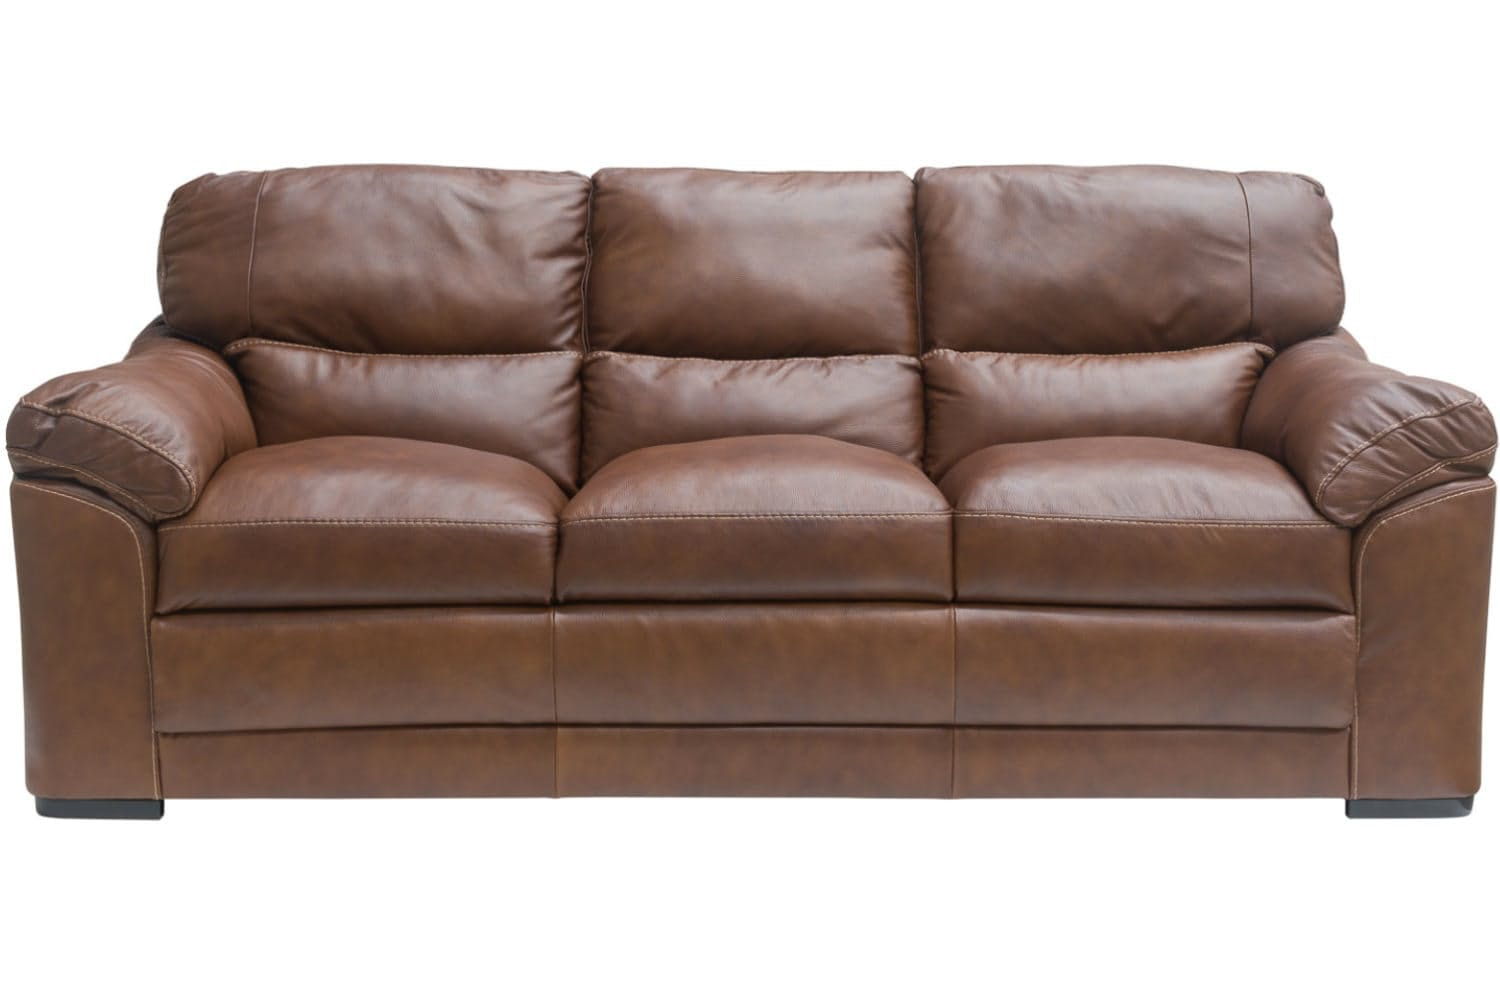 Senna Leather 3-Seater Sofa